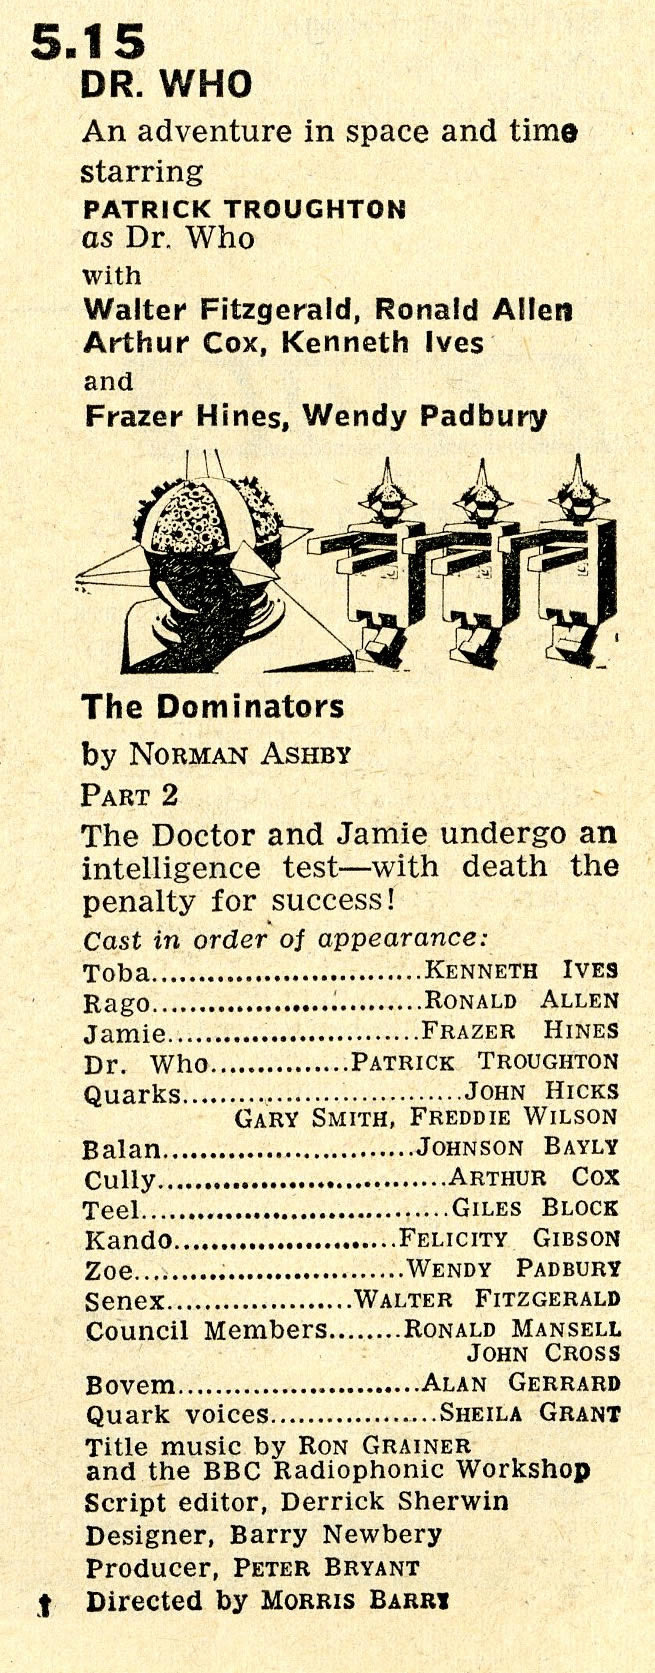 Radio Times, 17-23 August 1968